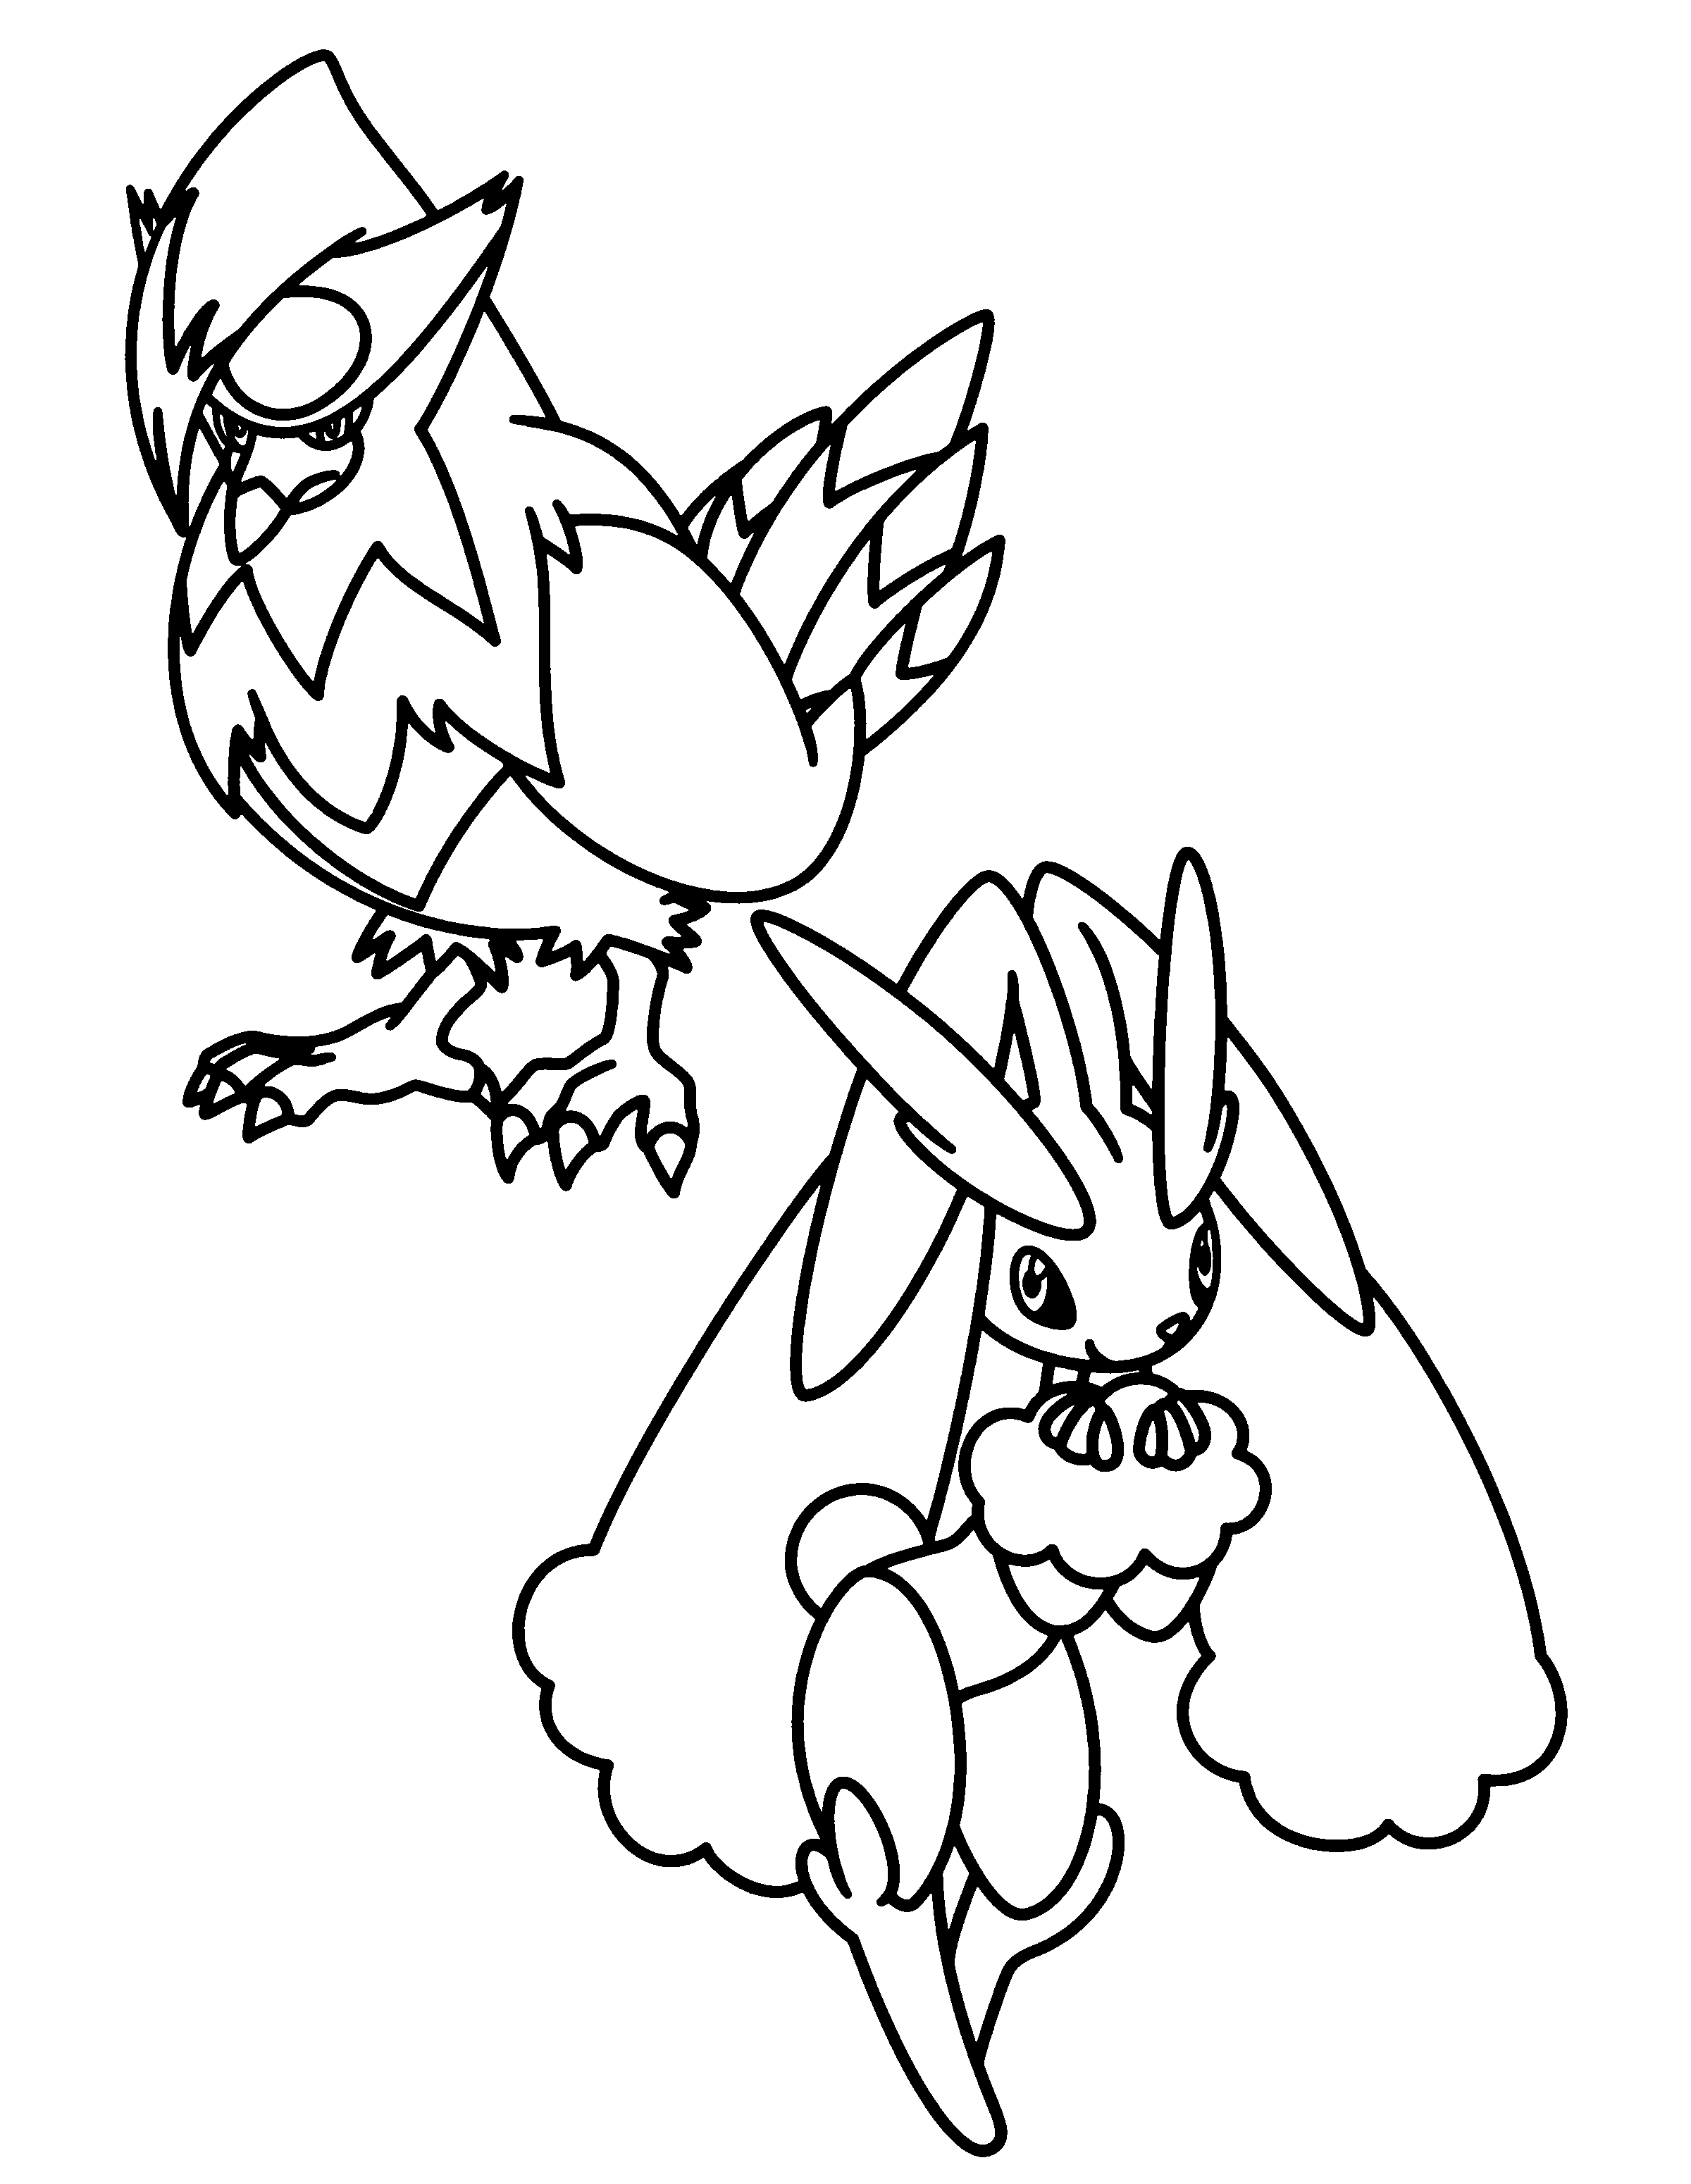 coloring page pokemon diamond pearl coloring pages 58. Black Bedroom Furniture Sets. Home Design Ideas